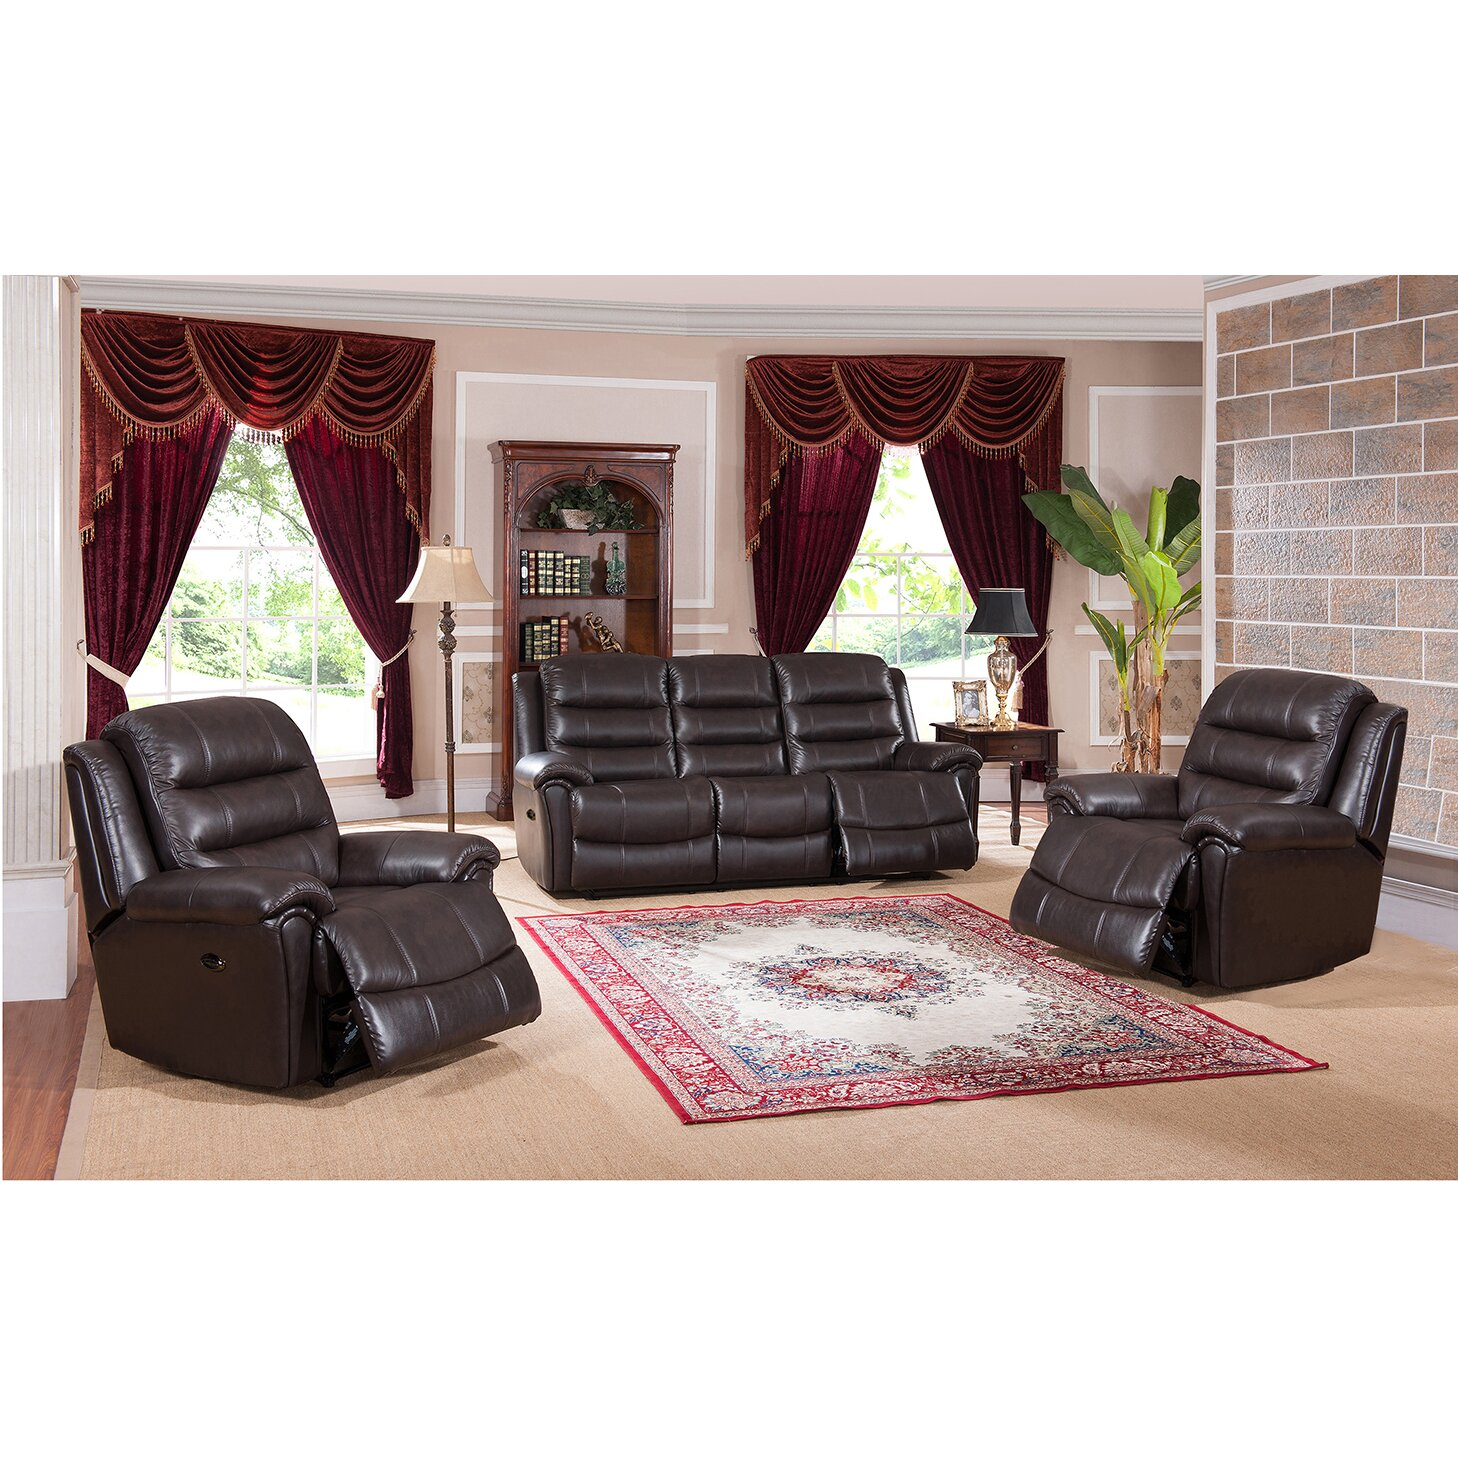 Amax astoria 3 piece leather living room set wayfair for 3 piece living room set